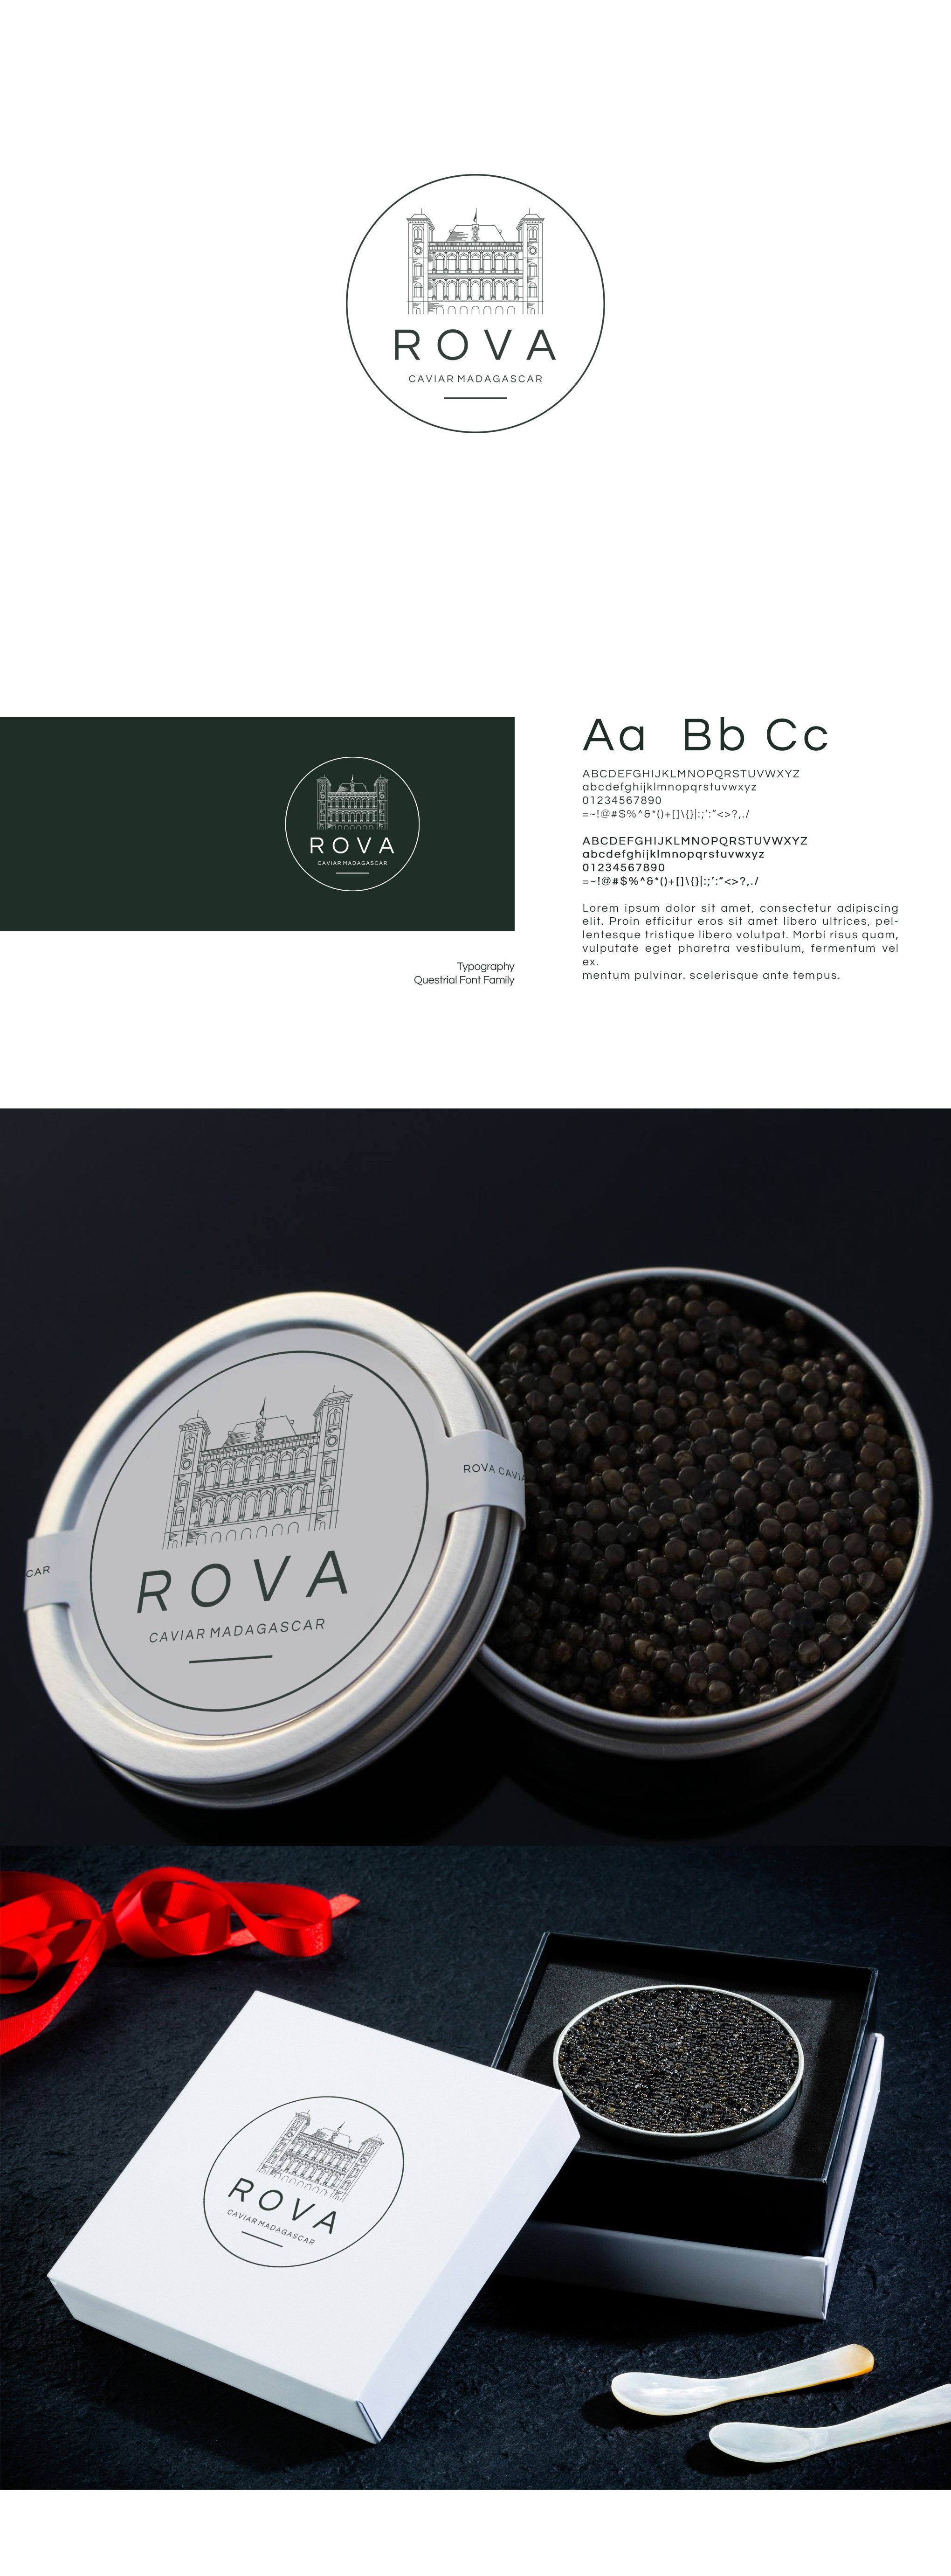 Create luxurious and modern brand identity for a sturgeon caviar brand